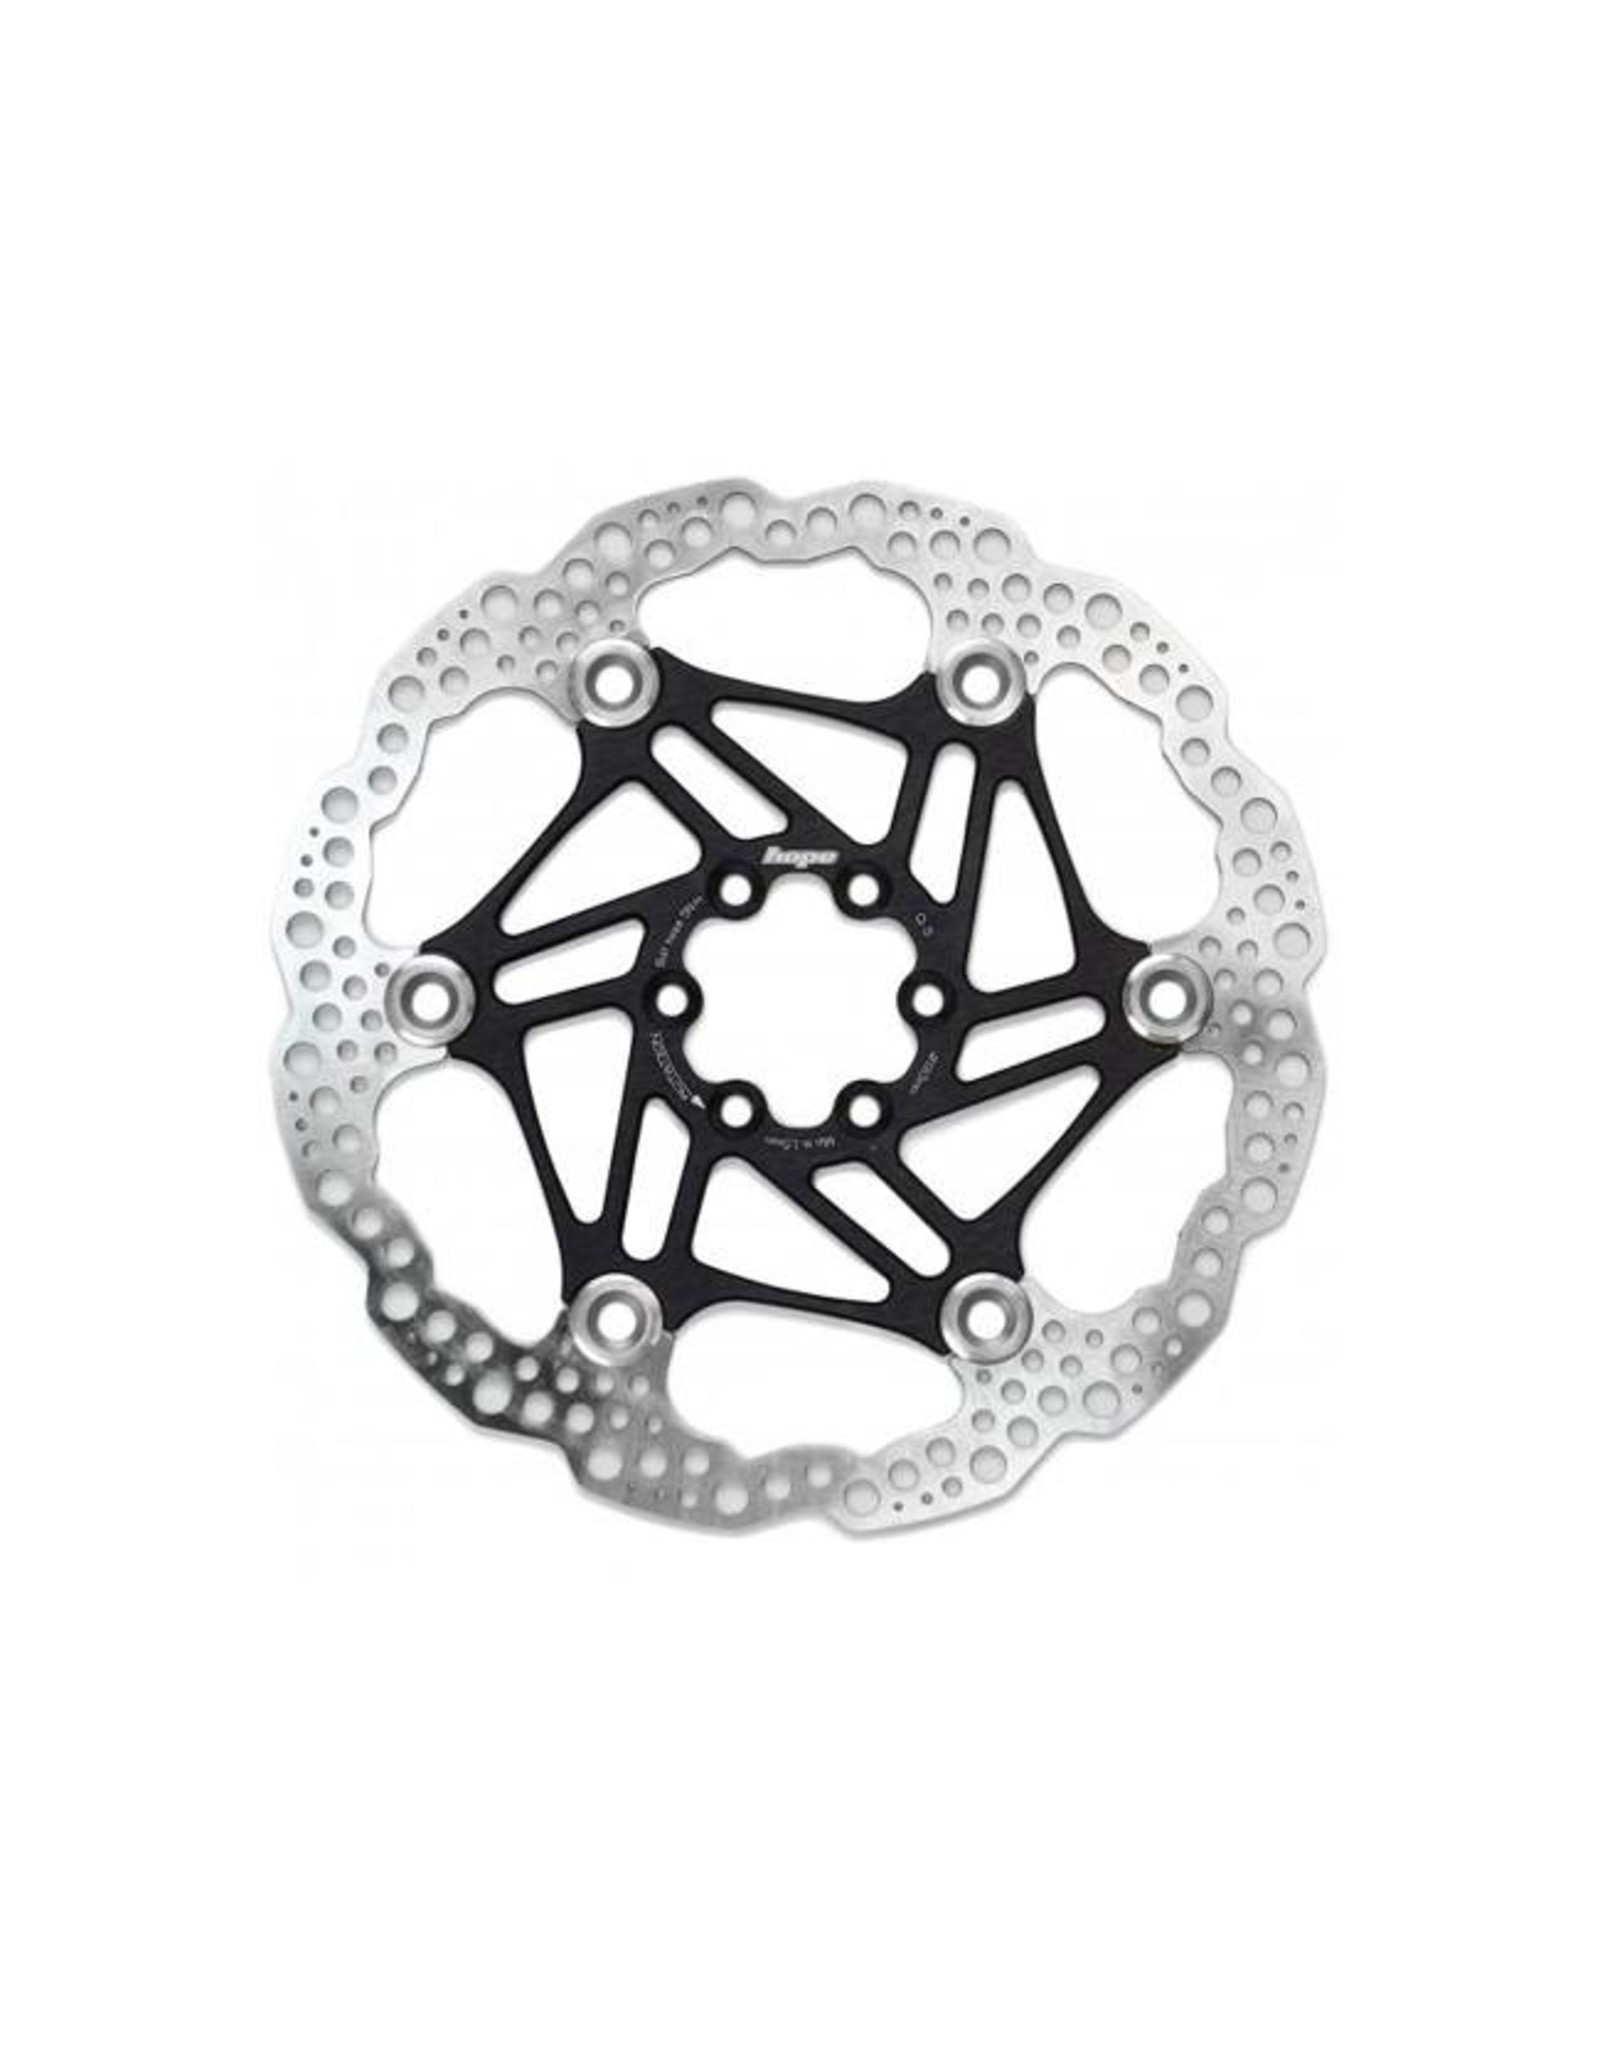 Hope Hope Floating Disc Rotor: 183mm Black